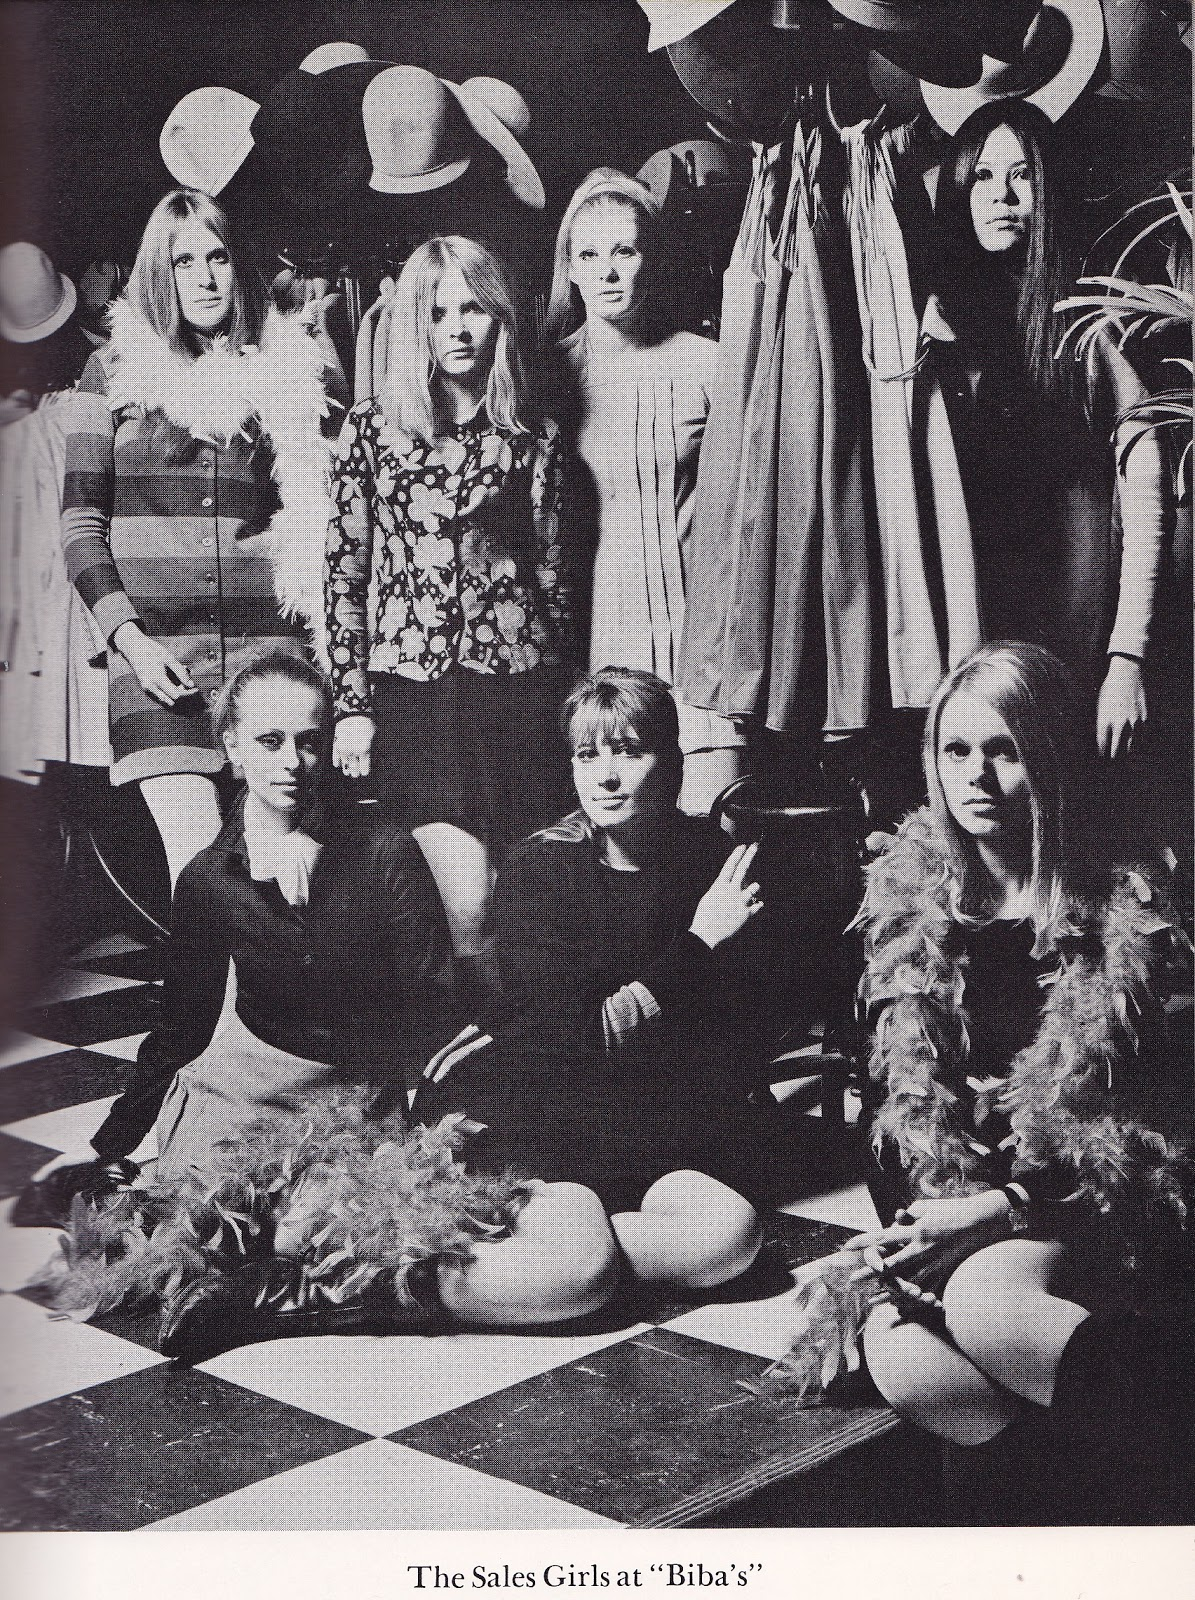 Swinging Sixties: London's Lost Department Store Of The Swinging Sixties